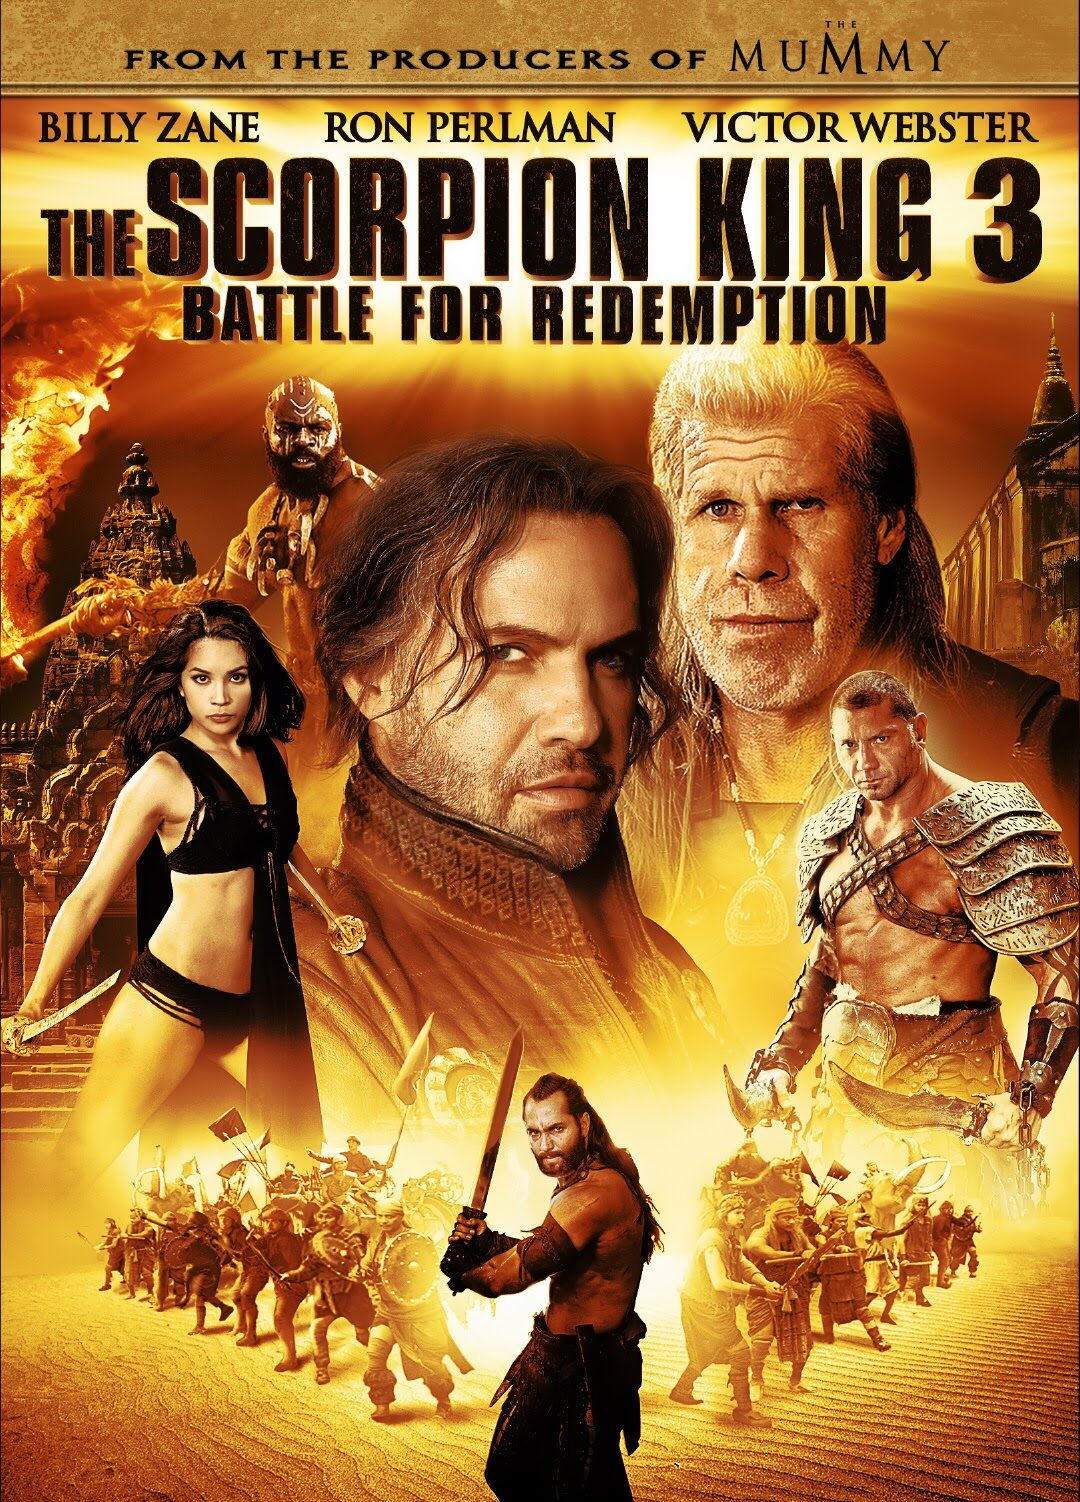 Movie Poster - The Scorpion King 3: Battle for Redemption